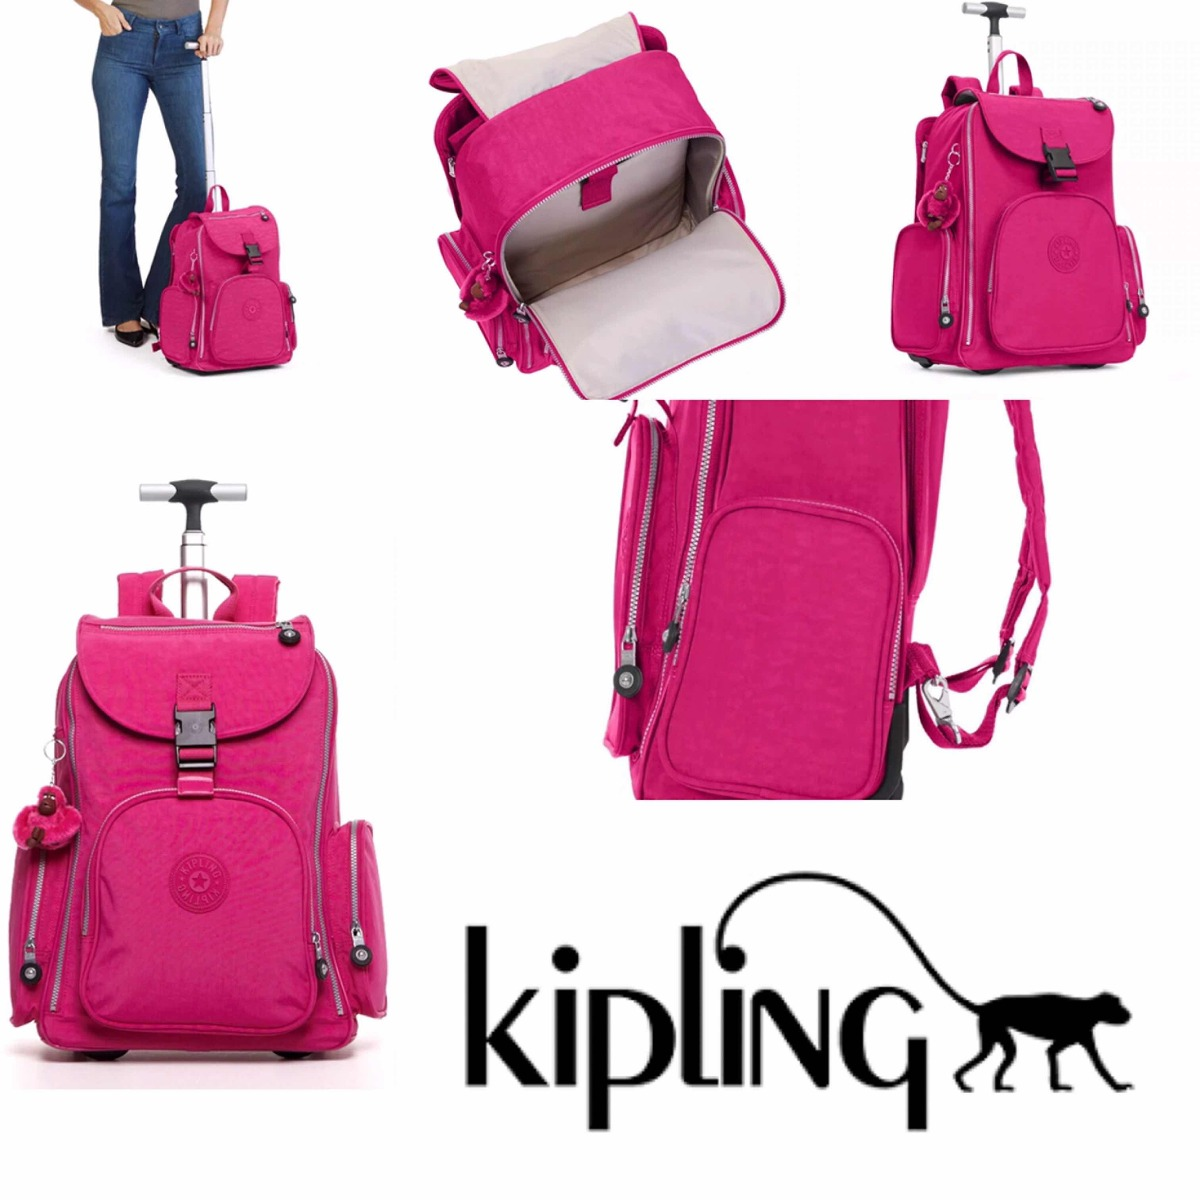 kipling alcatraz large rolling laptop backpack. Cargando zoom. 492a5fb6a1be4